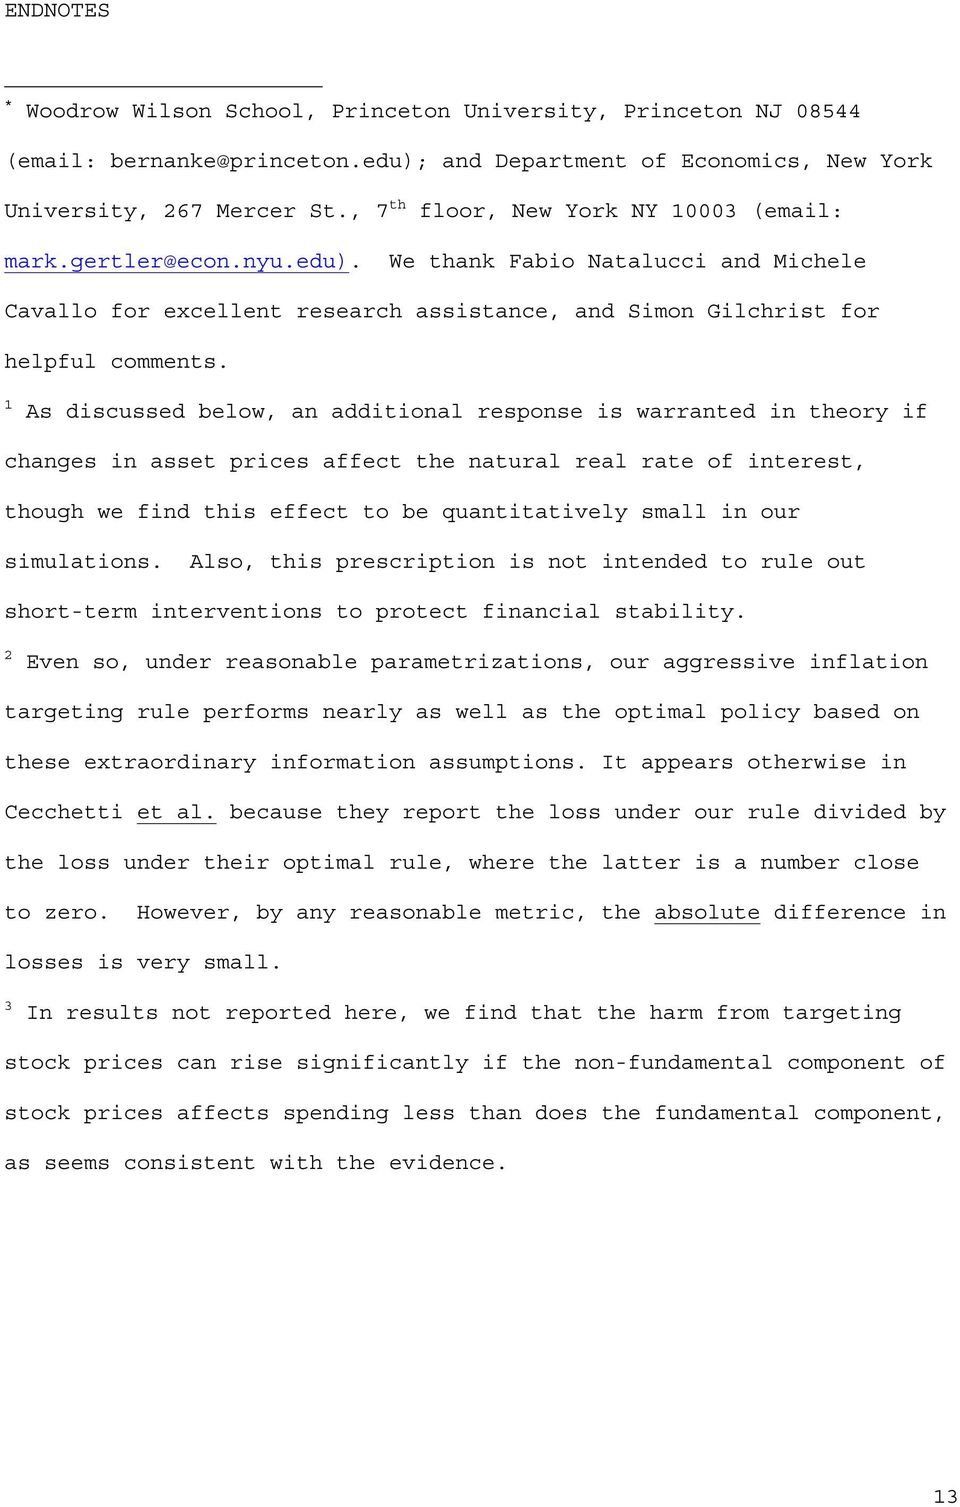 1 As discussed below, an additional response is warranted in theory if changes in asset prices affect the natural real rate of interest, though we find this effect to be quantitatively small in our